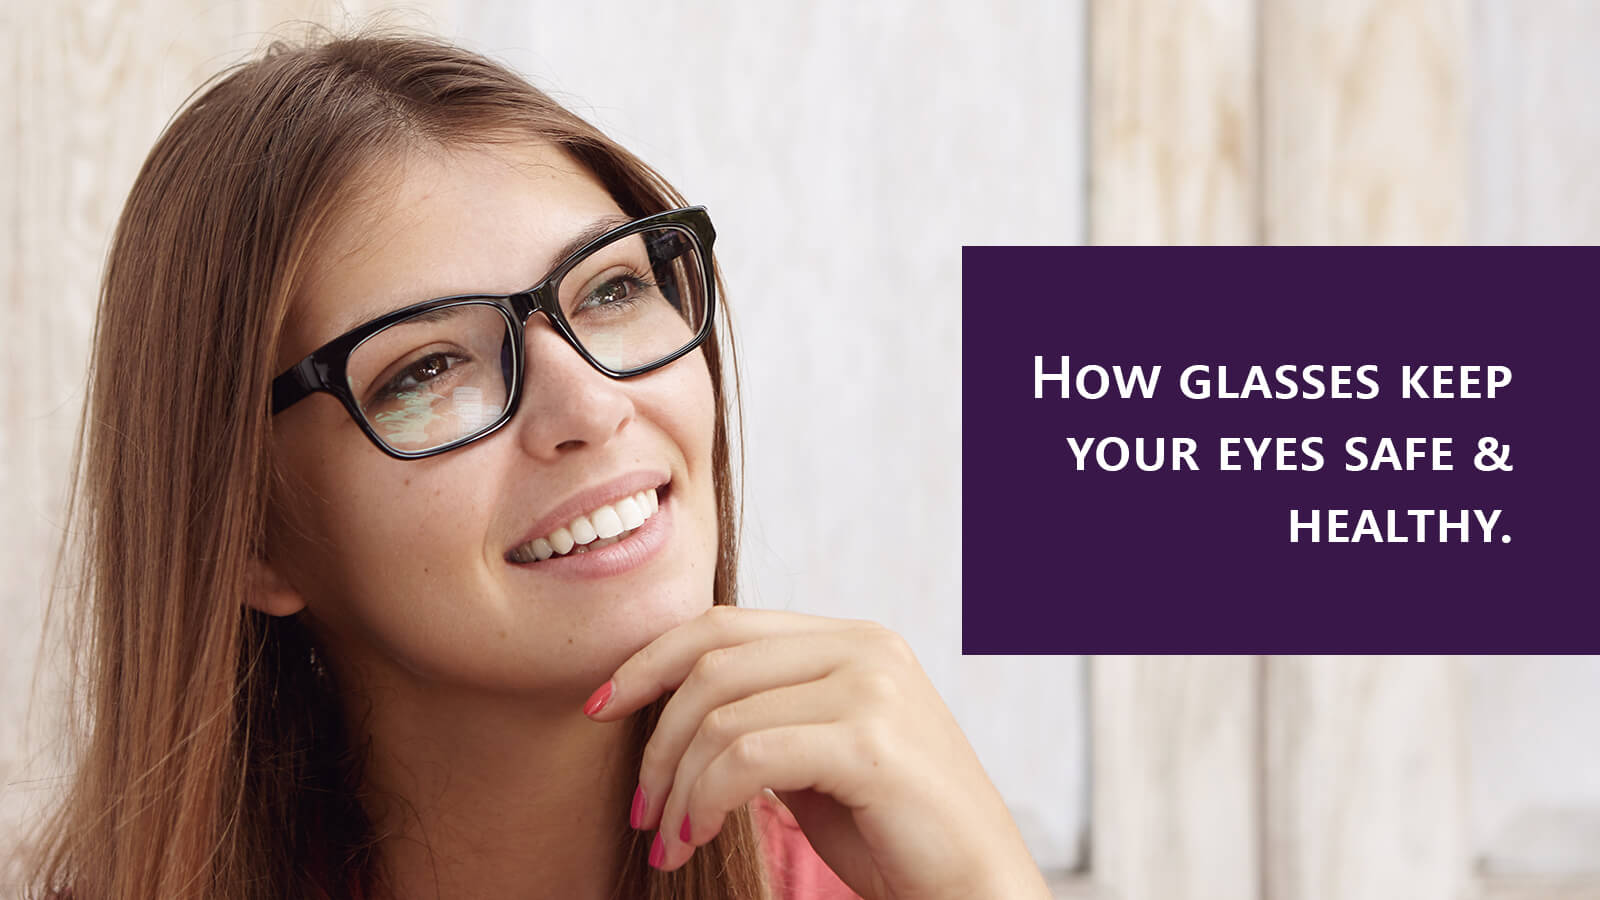 6 reasons how glasses keep your eyes safe & healthy